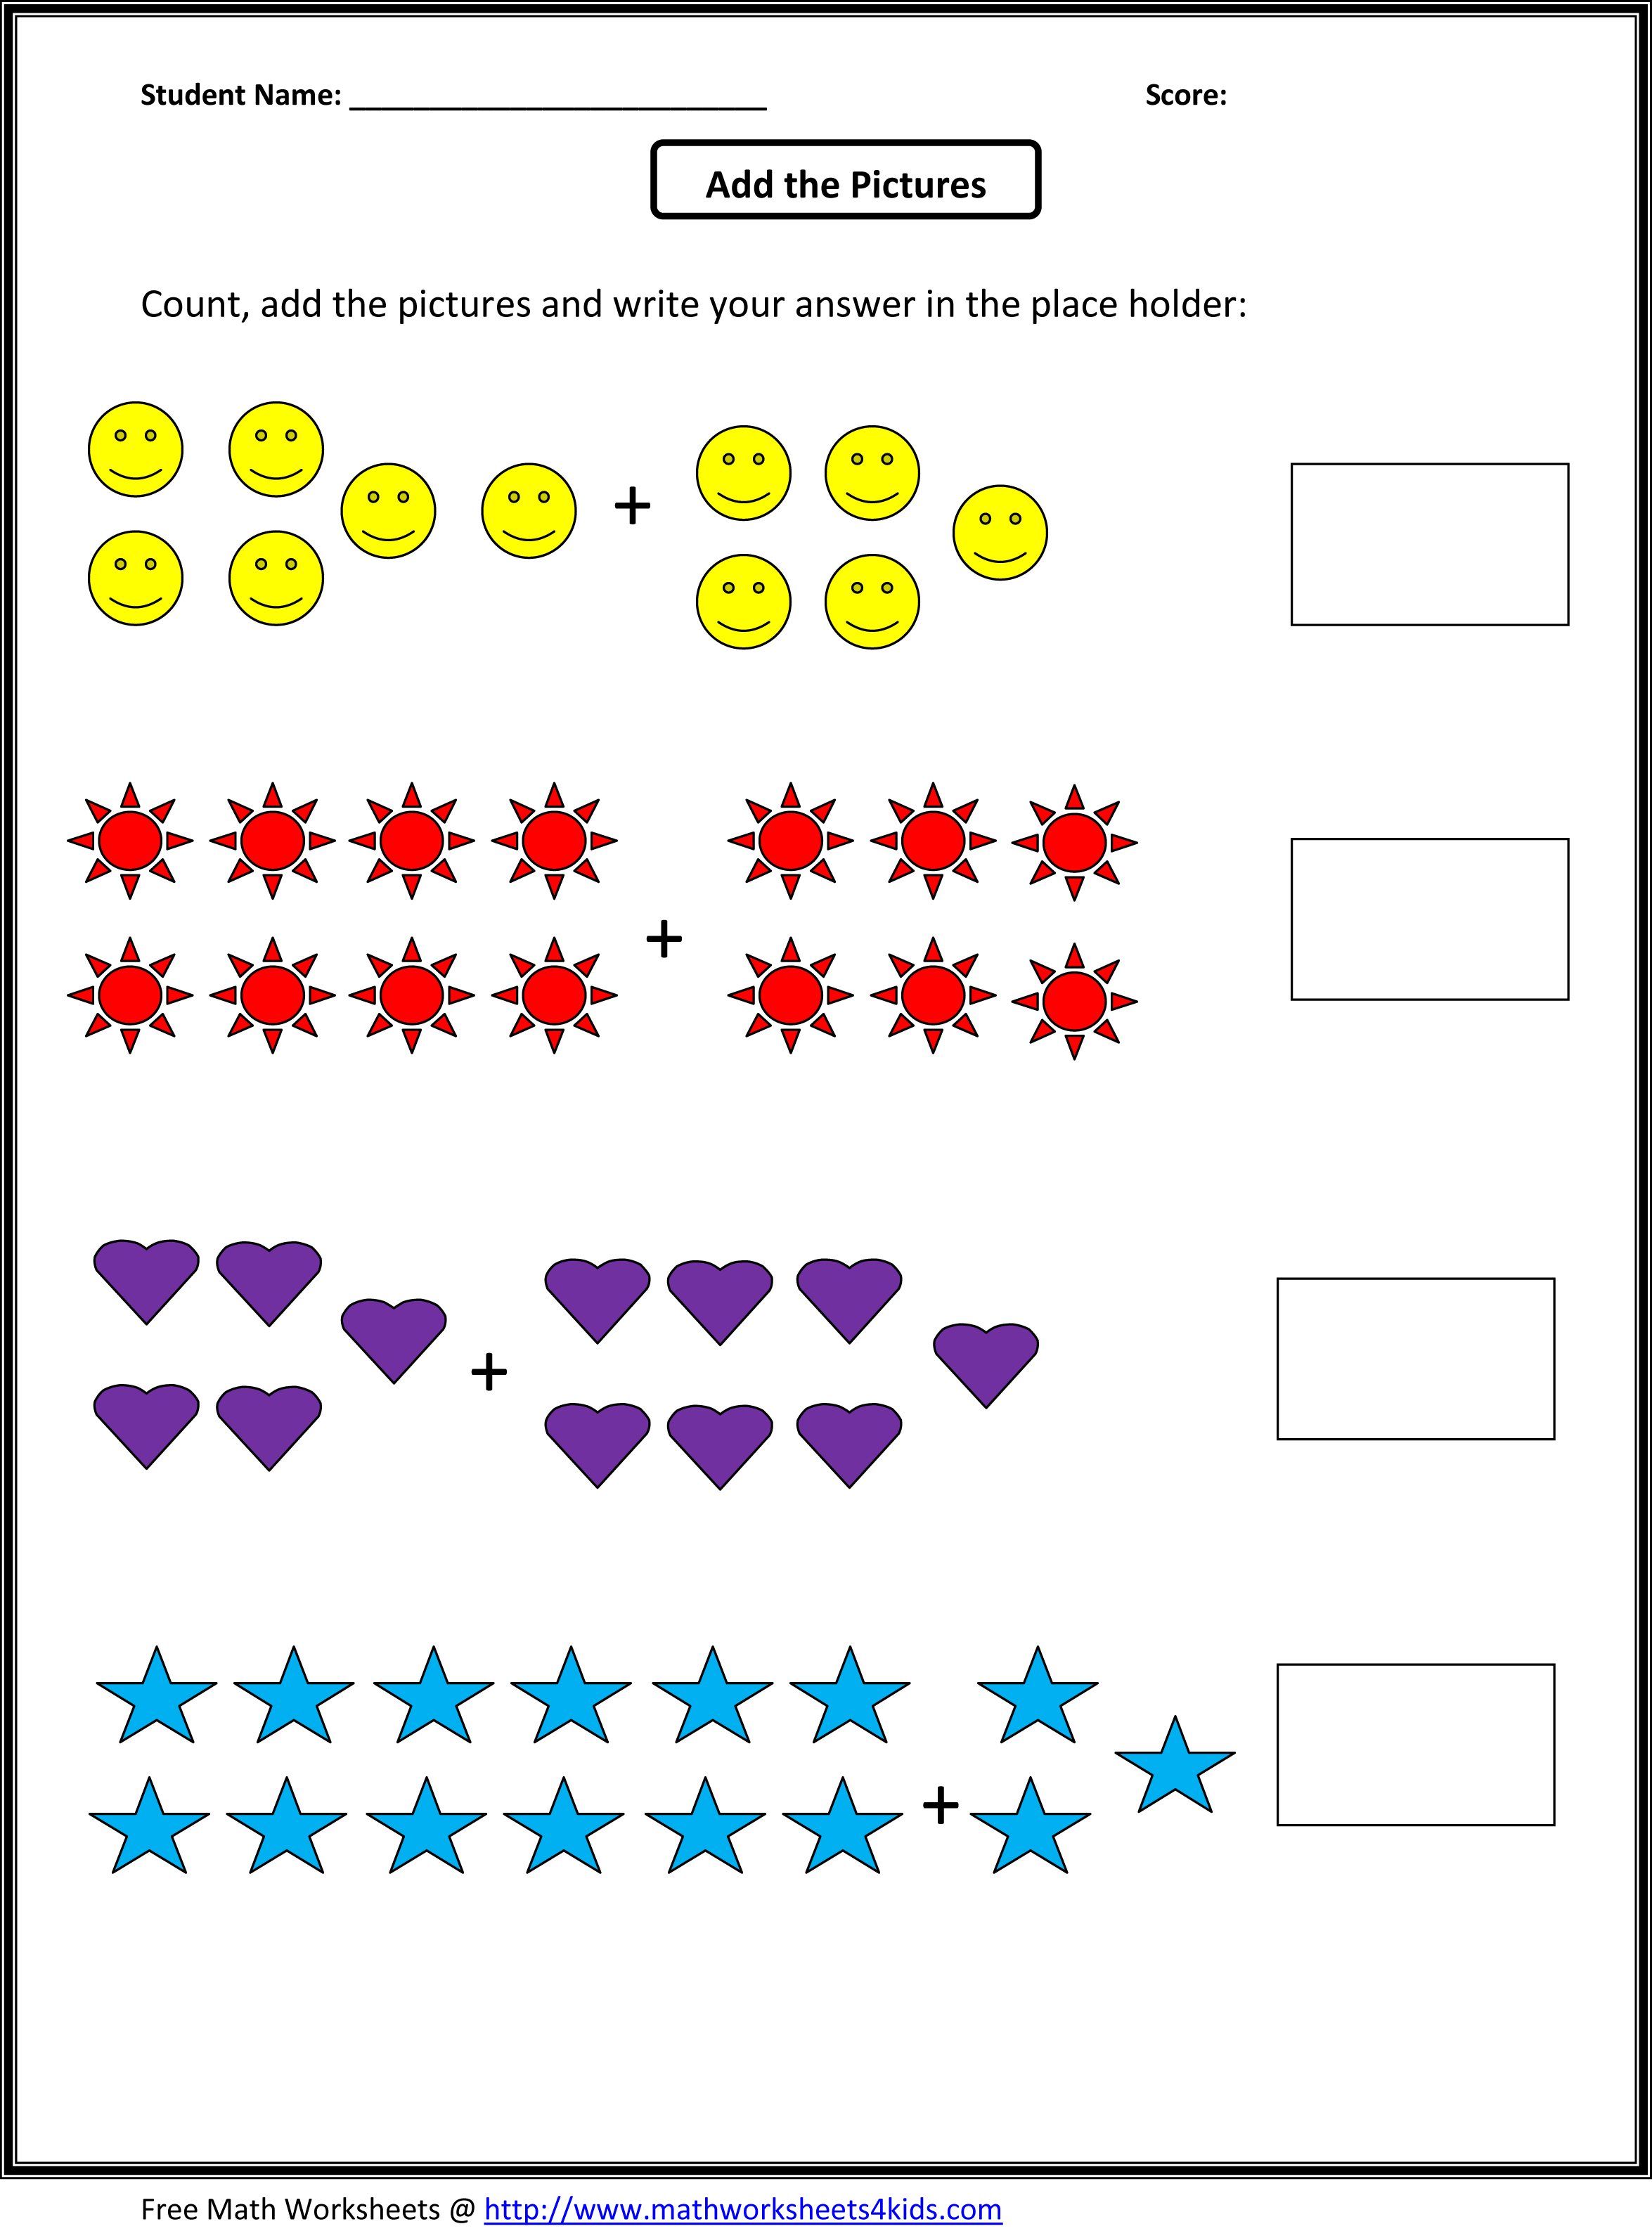 Proatmealus  Personable Grade  Maths Worksheet  Reocurent With Entrancing Math Worksheets For St Grade Free  Reocurent With Lovely Direct And Inverse Variation Worksheet Answers Also Lewis Dot Worksheet In Addition Wordiness Worksheet And Worksheet For Scientific Method As Well As Math Worksheets Th Grade Additionally Properties Of Light Worksheet From Reocurentcom With Proatmealus  Entrancing Grade  Maths Worksheet  Reocurent With Lovely Math Worksheets For St Grade Free  Reocurent And Personable Direct And Inverse Variation Worksheet Answers Also Lewis Dot Worksheet In Addition Wordiness Worksheet From Reocurentcom